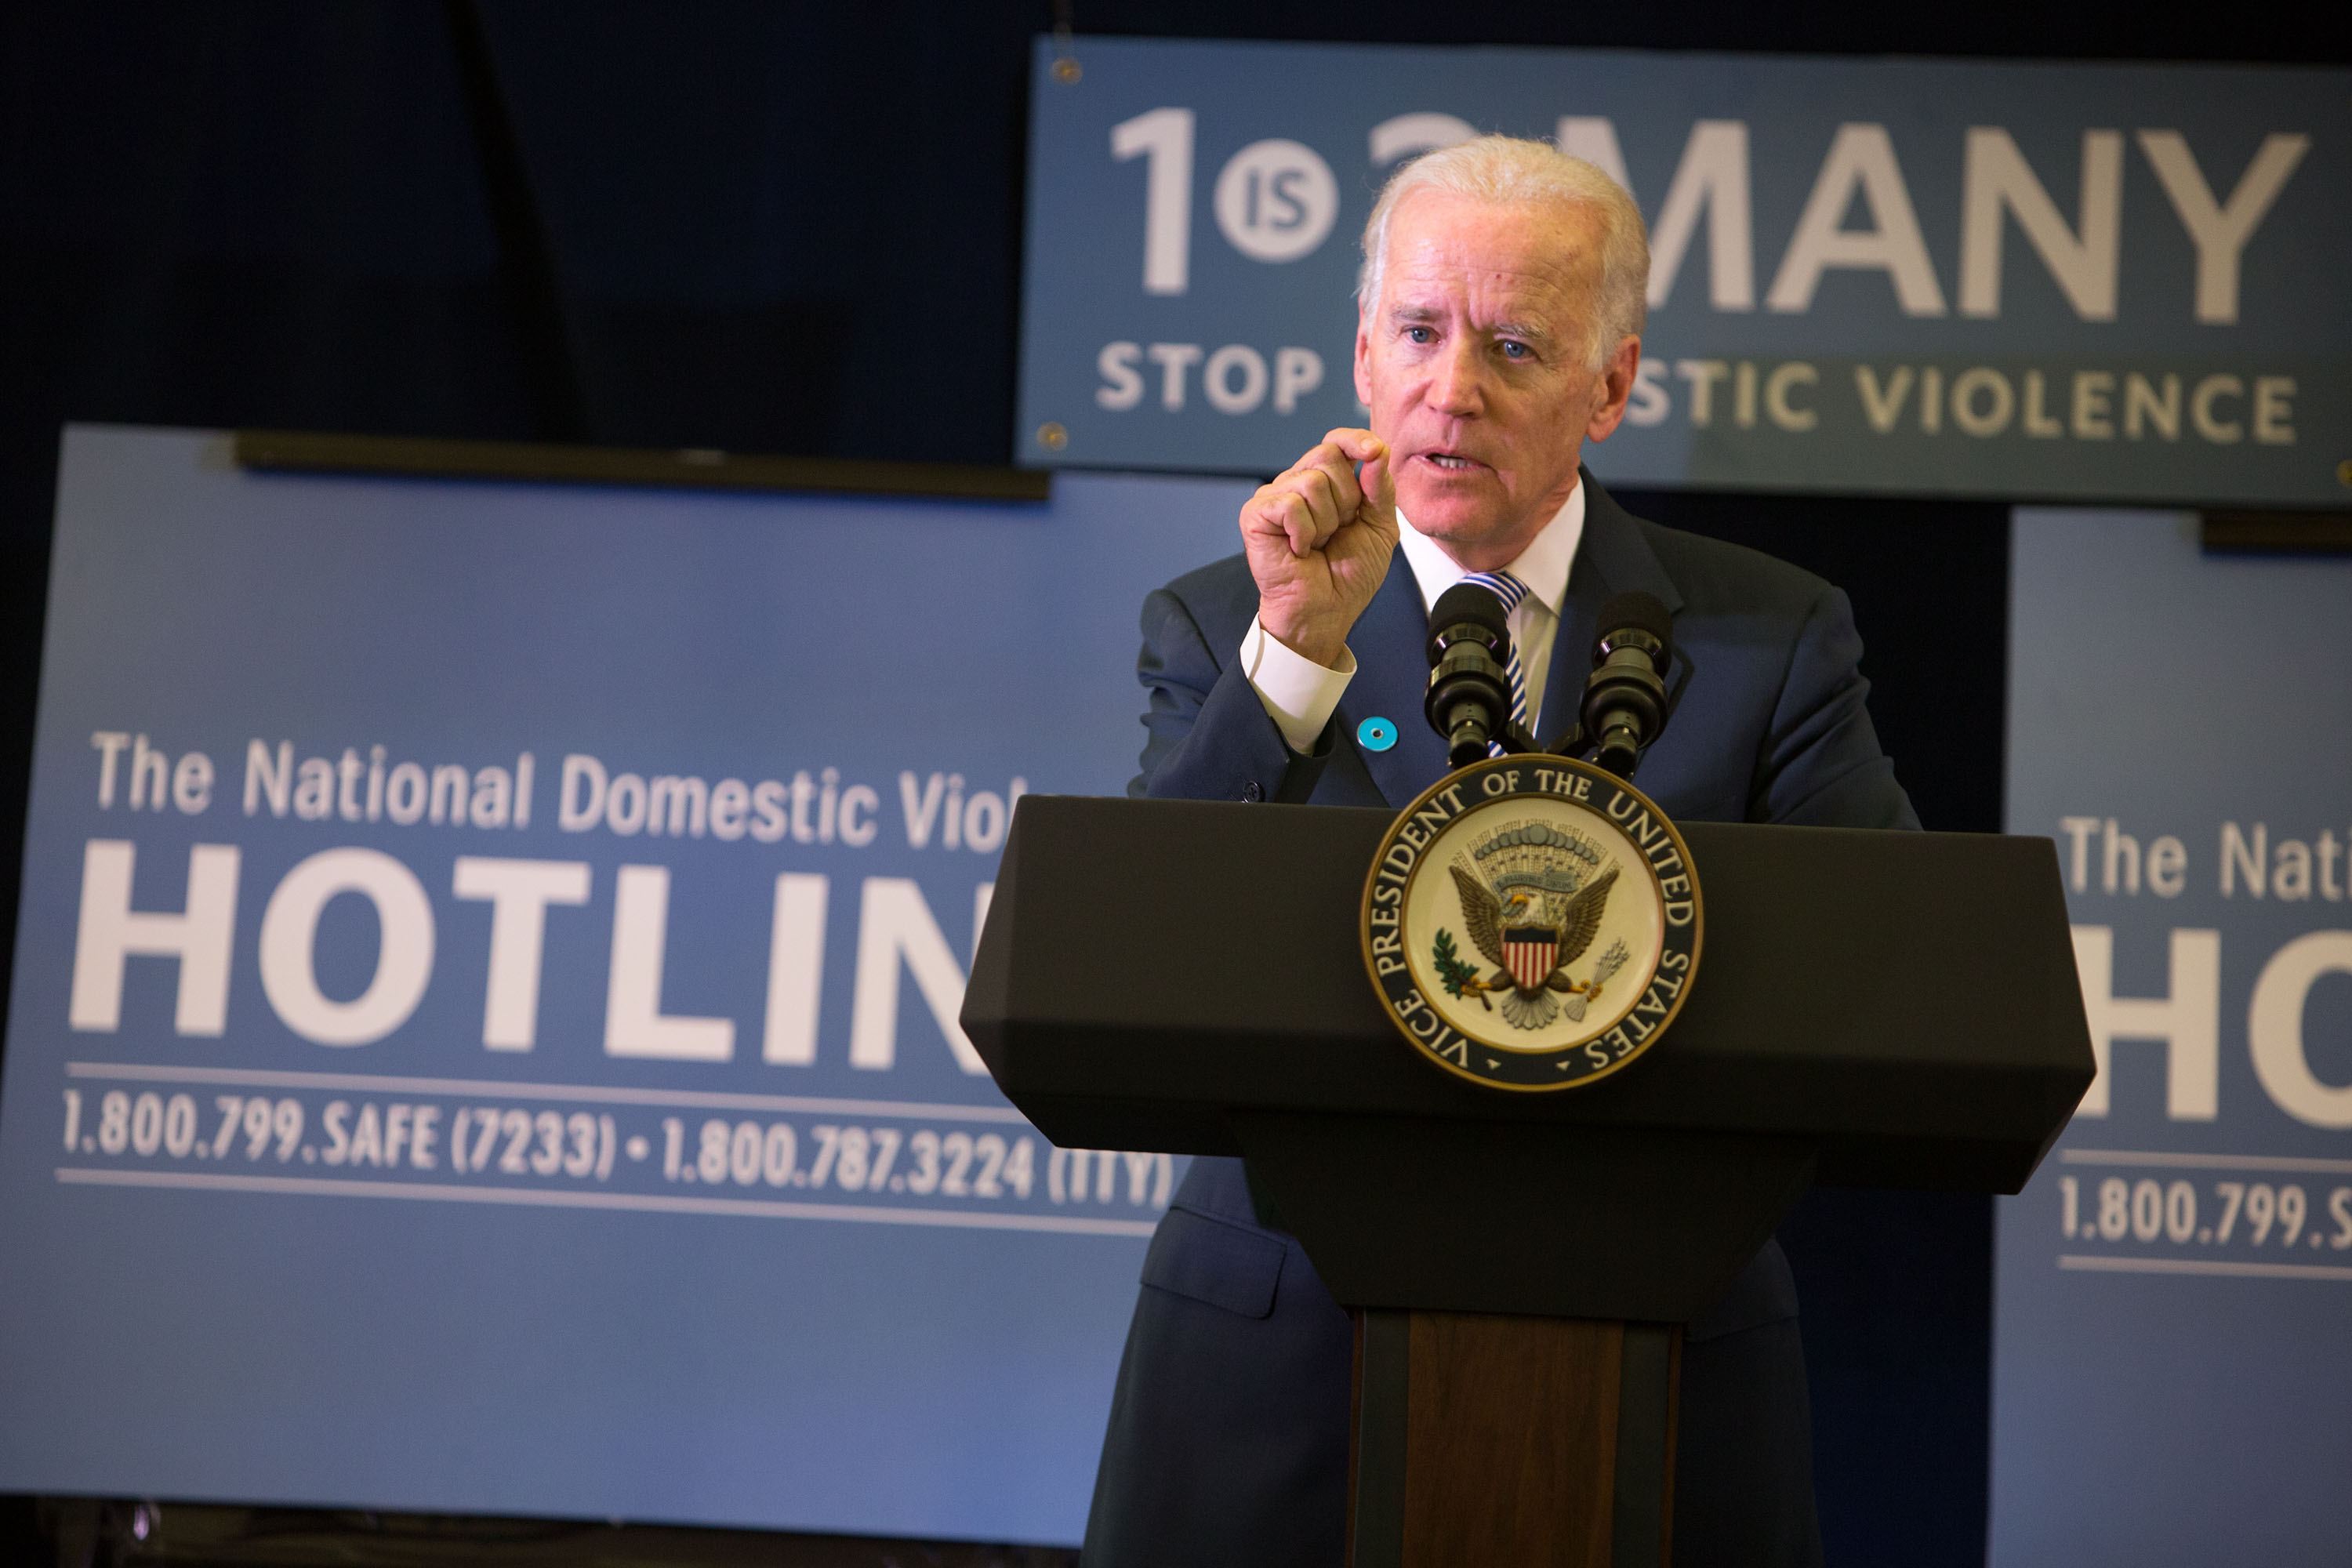 Vice President Joe Biden speaks at an event at the National Domestic Violence Hotline